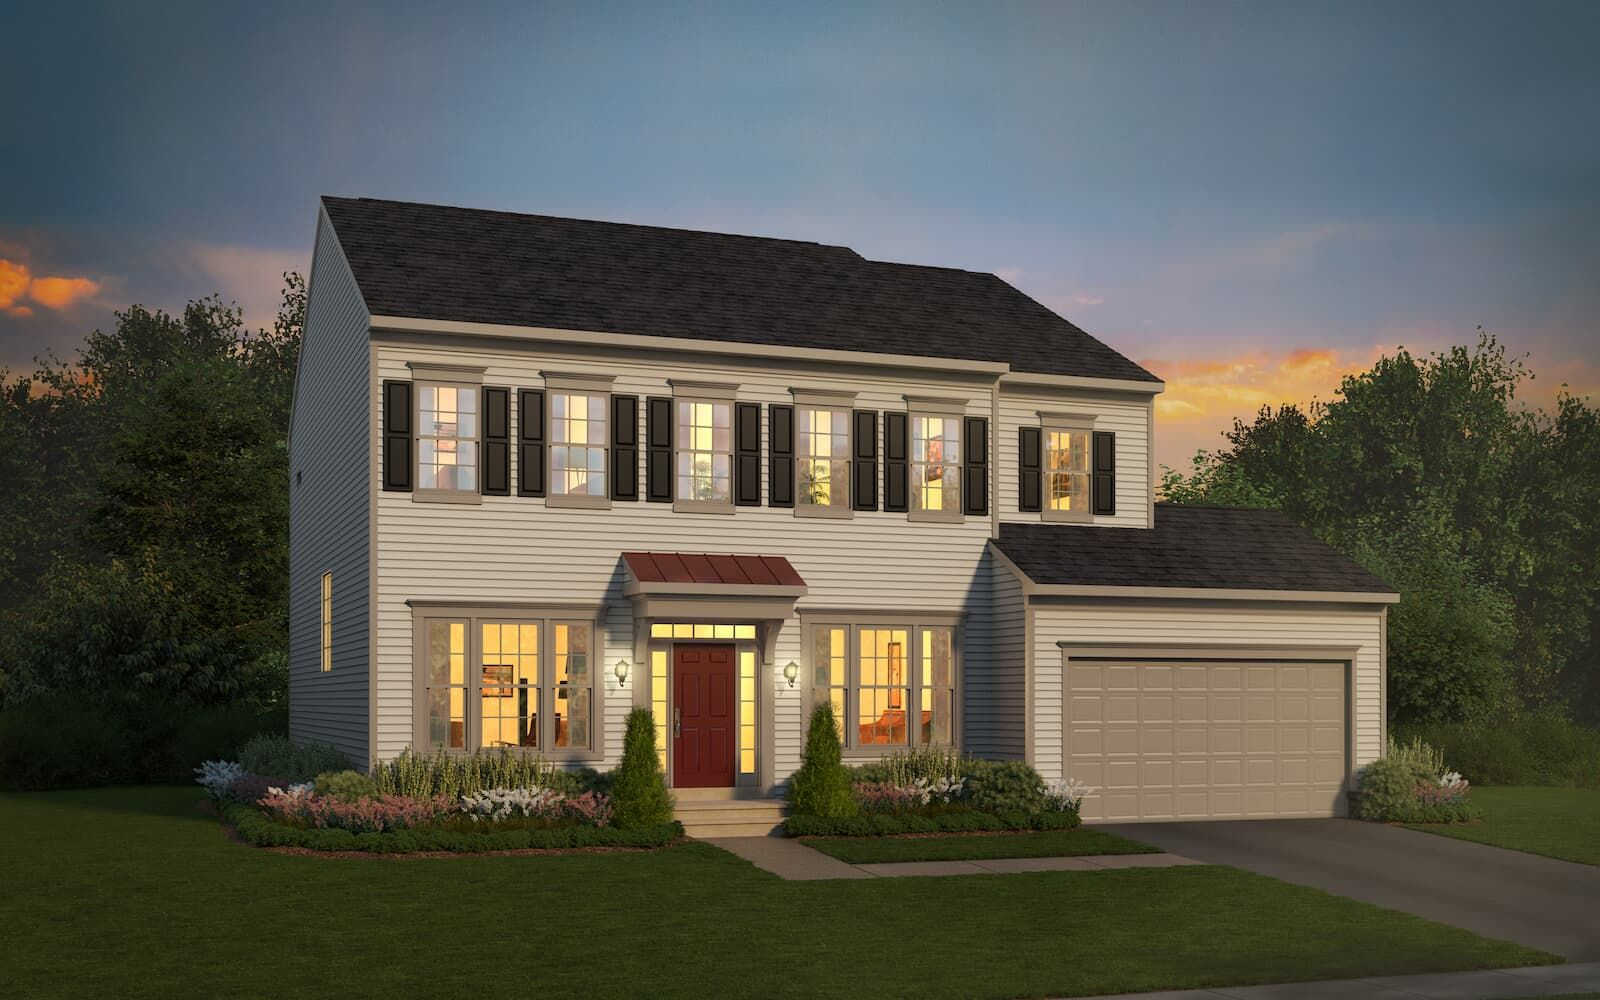 Exterior:Elevation 1 of the Kensington a single family home design by Brookfield Residential.